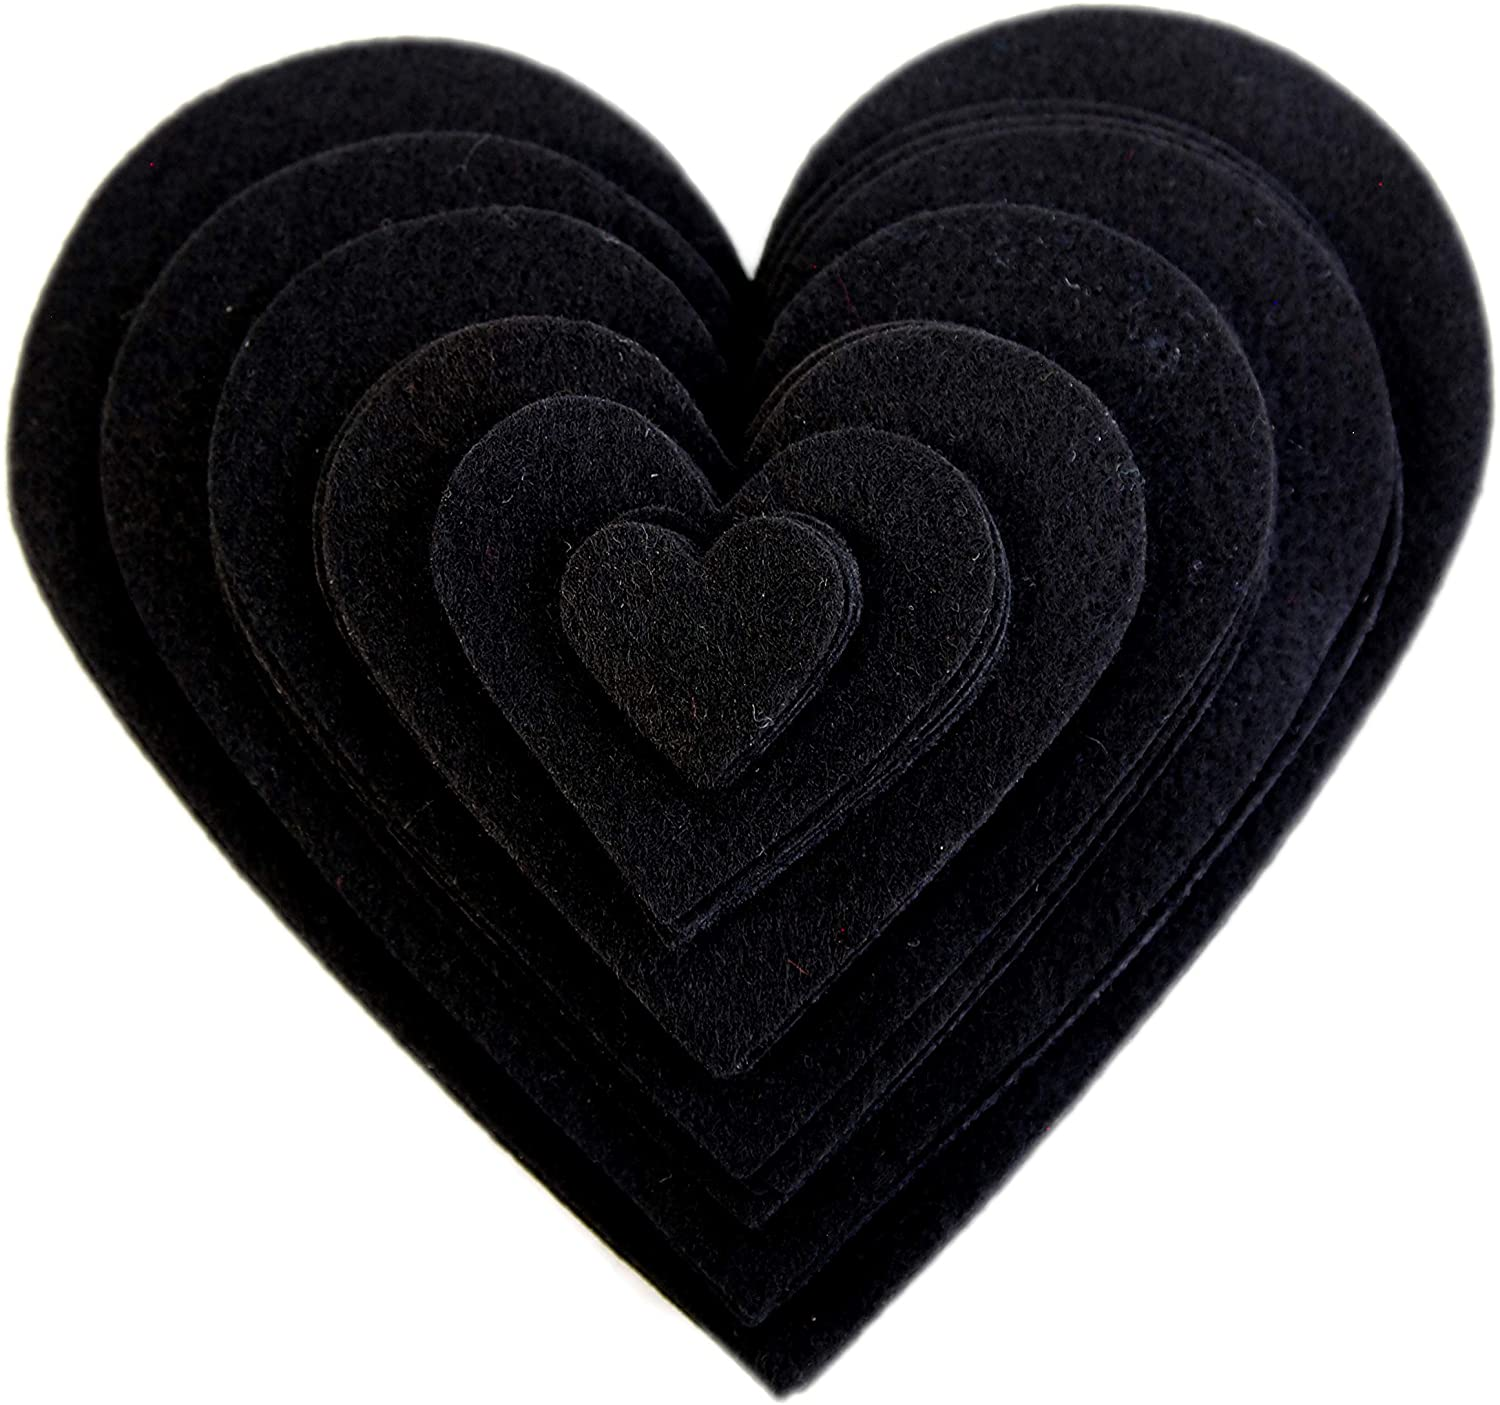 Playfully Ever After 1 to 6 inch Multi-Size Pack 24pc Felt Hearts (Black)